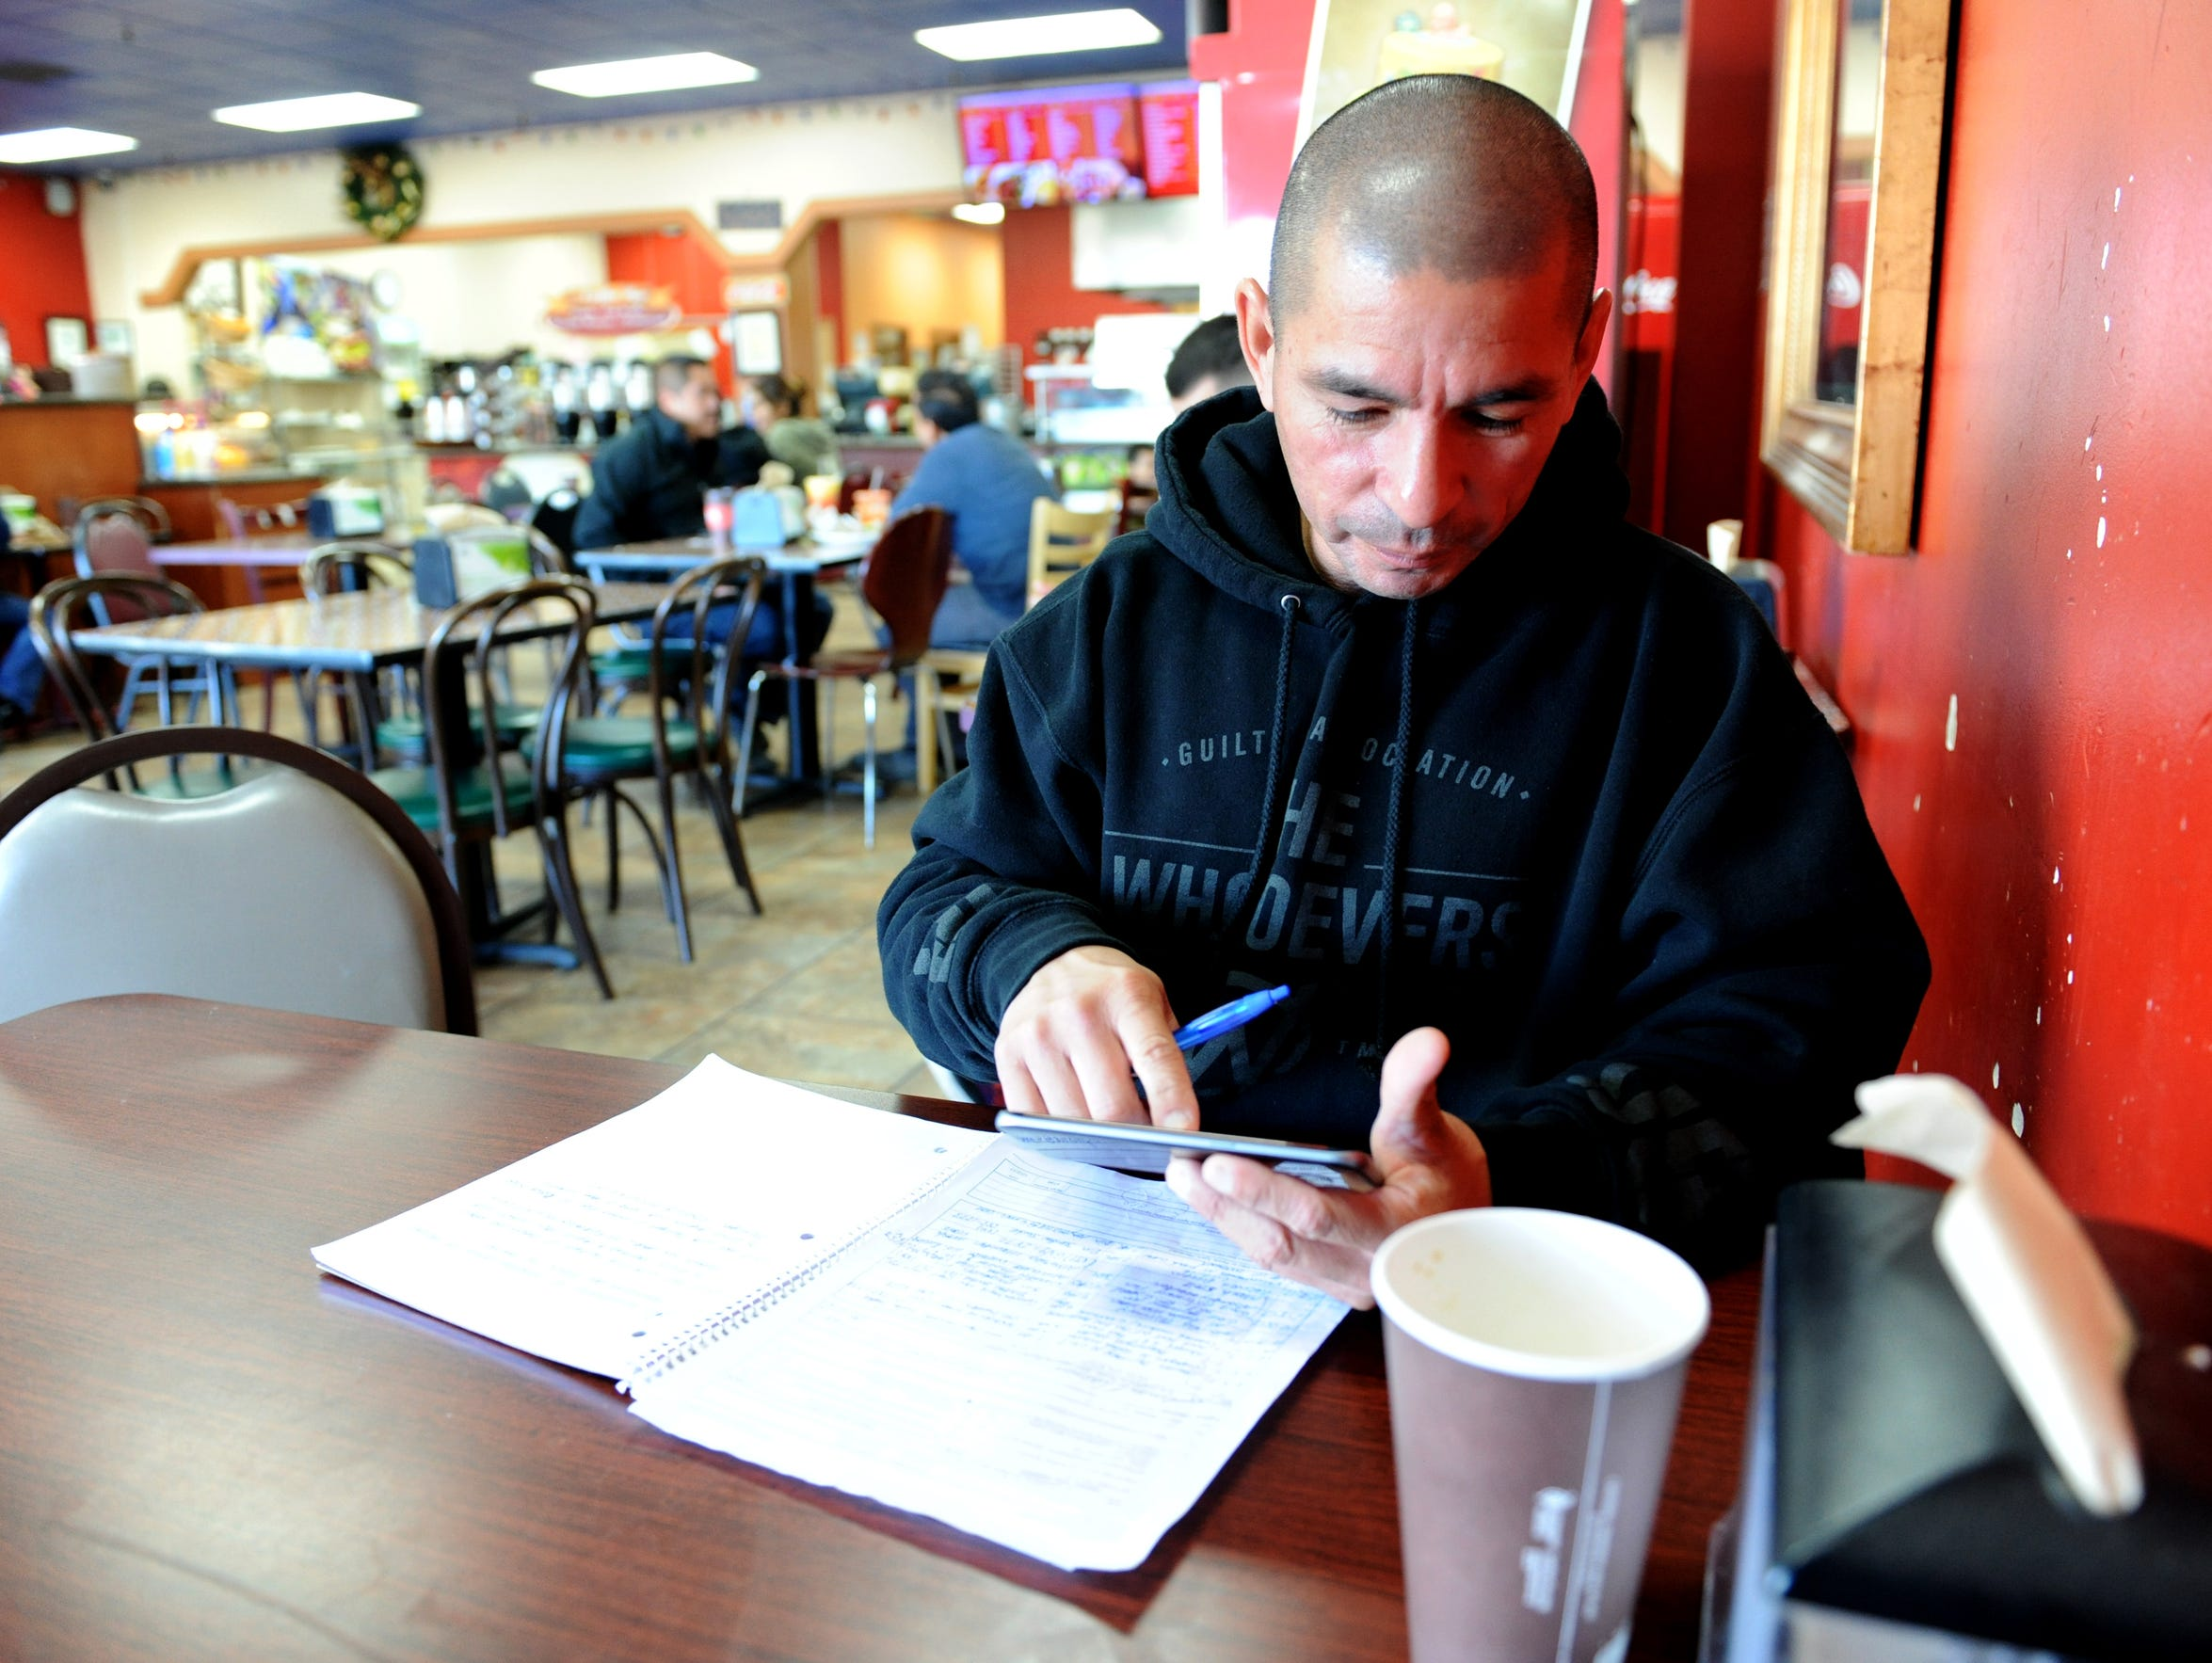 Placencia works on paperwork for his company and nonprofit at La Plaza Bakery on Davis Road on Salinas.